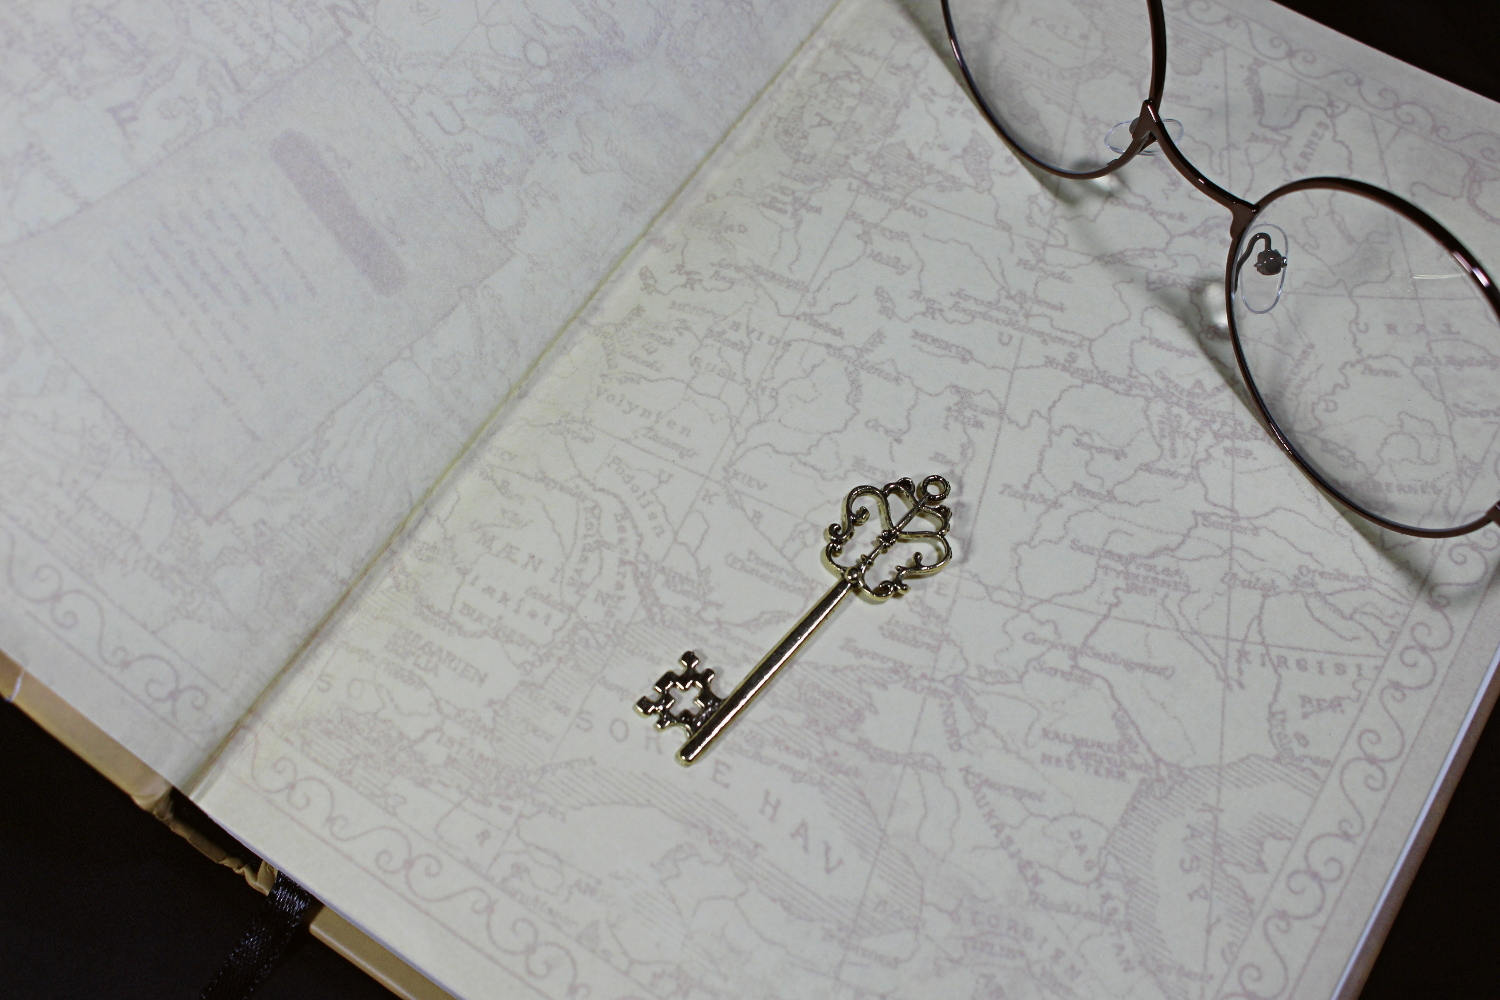 ba close up picture of a key pendant laying on an opened book